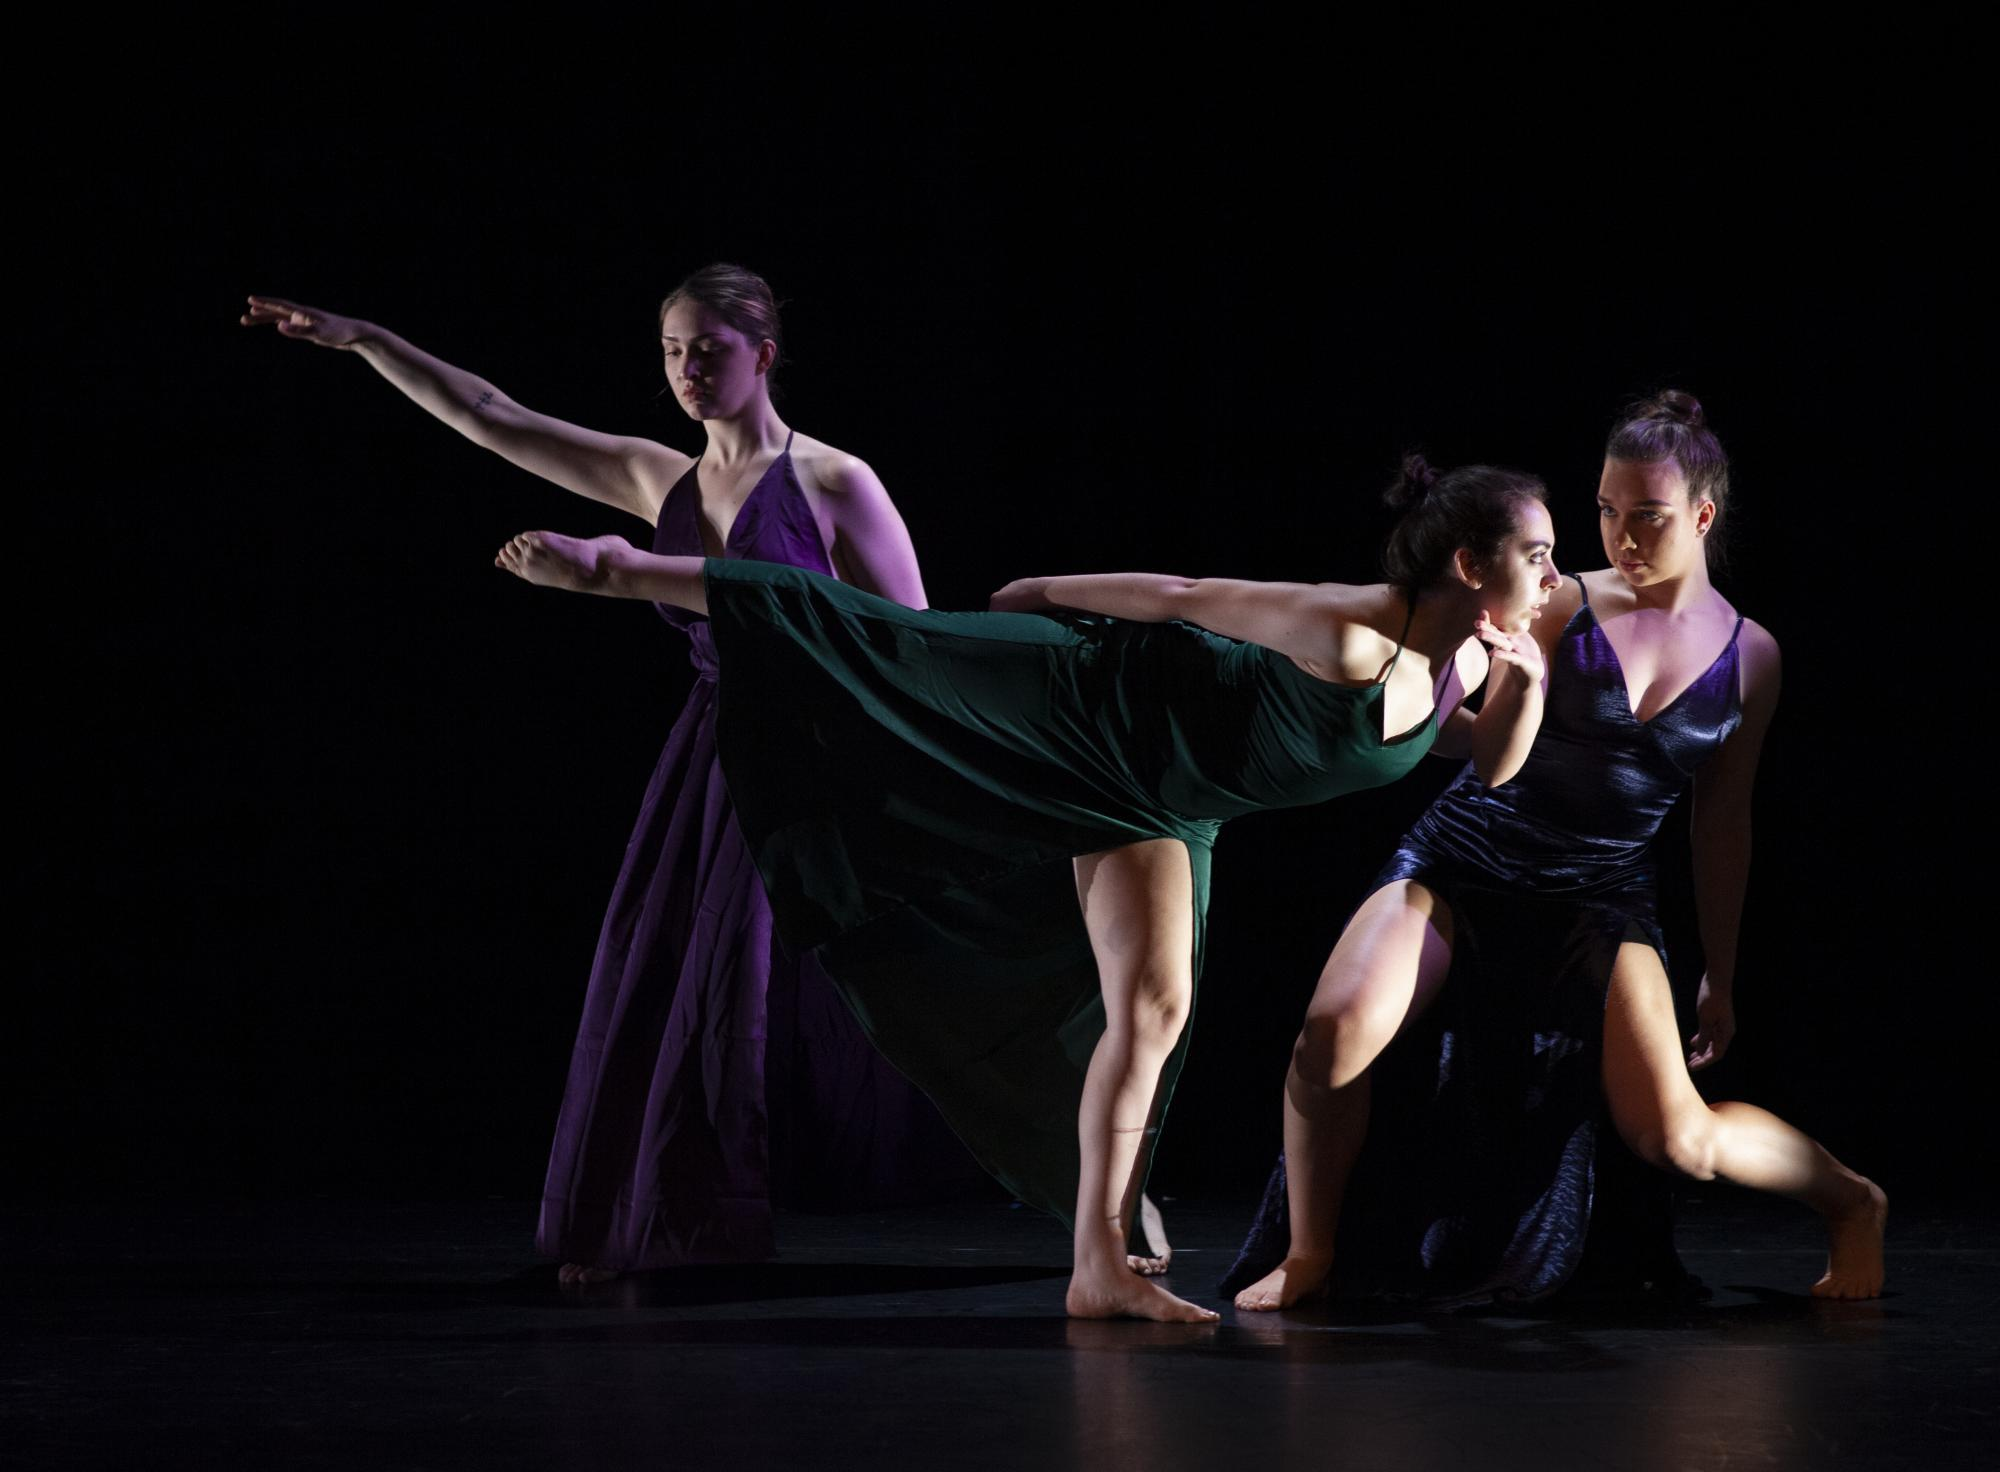 """Catalina O'Connor doing modern dance in Spring 2019 Dance Concert """"Dances From the Heart"""""""